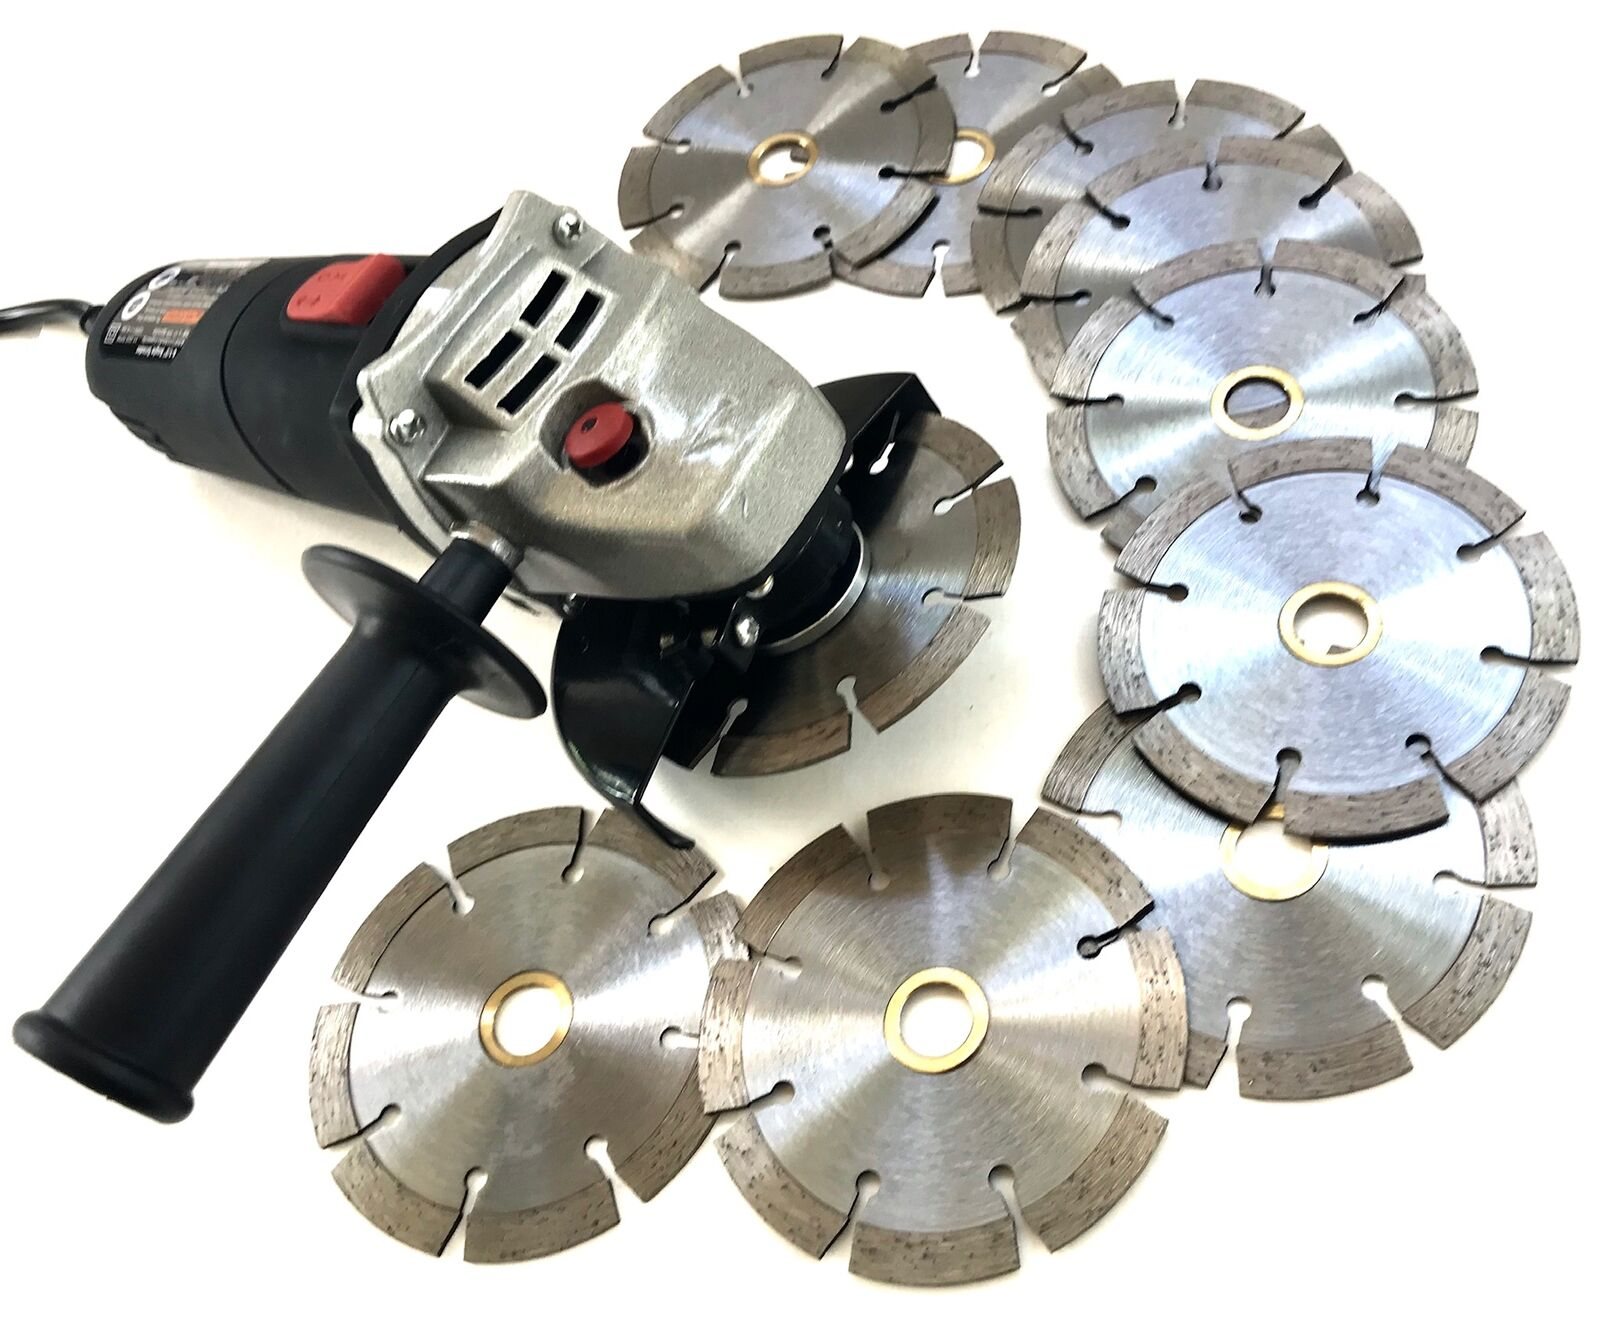 "4 1 2'' angle grinder with (15) 4"" Segmented diamond blade for stone, masonry"